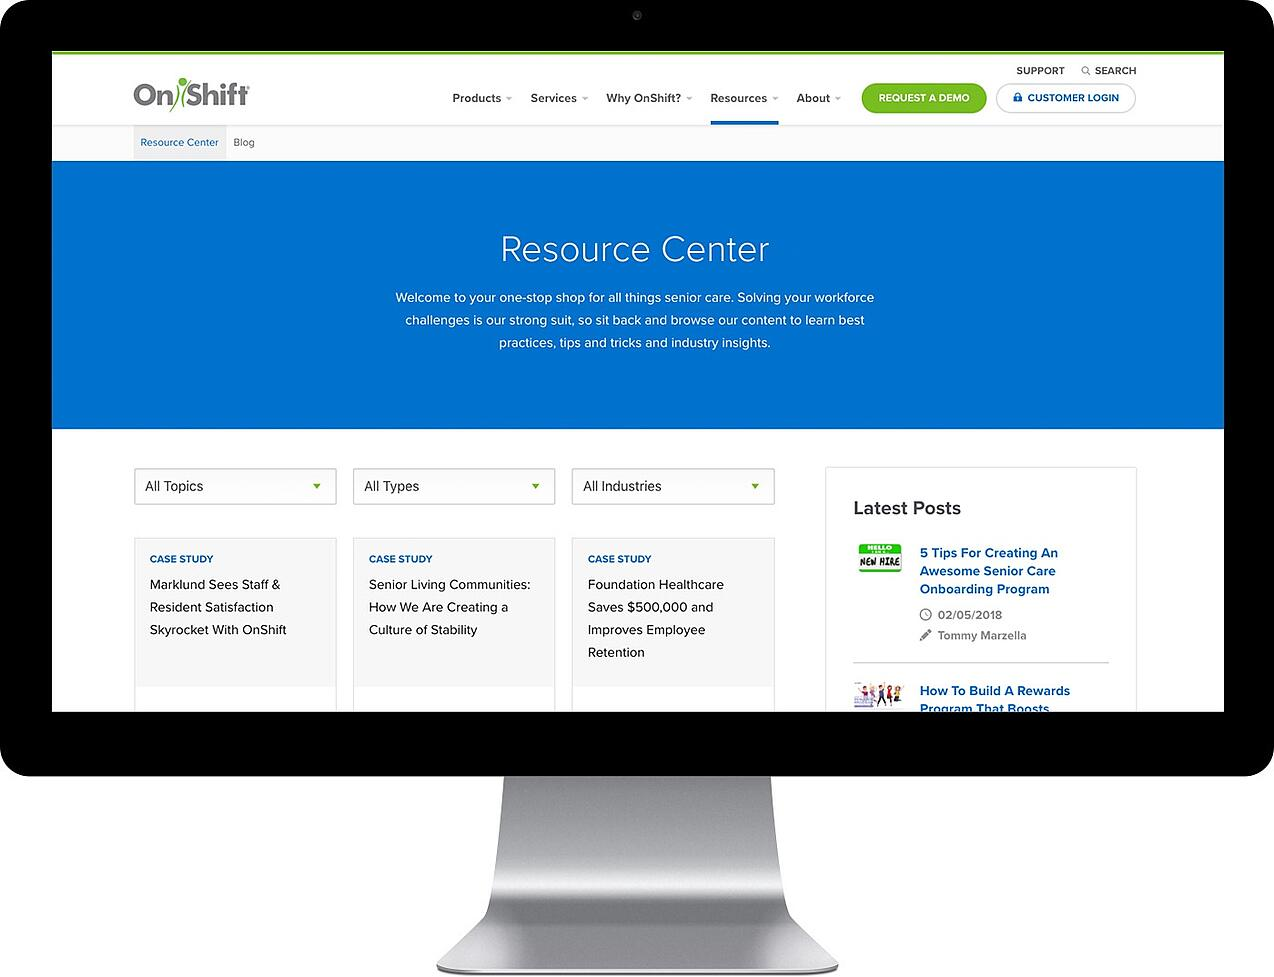 OnShift resource center